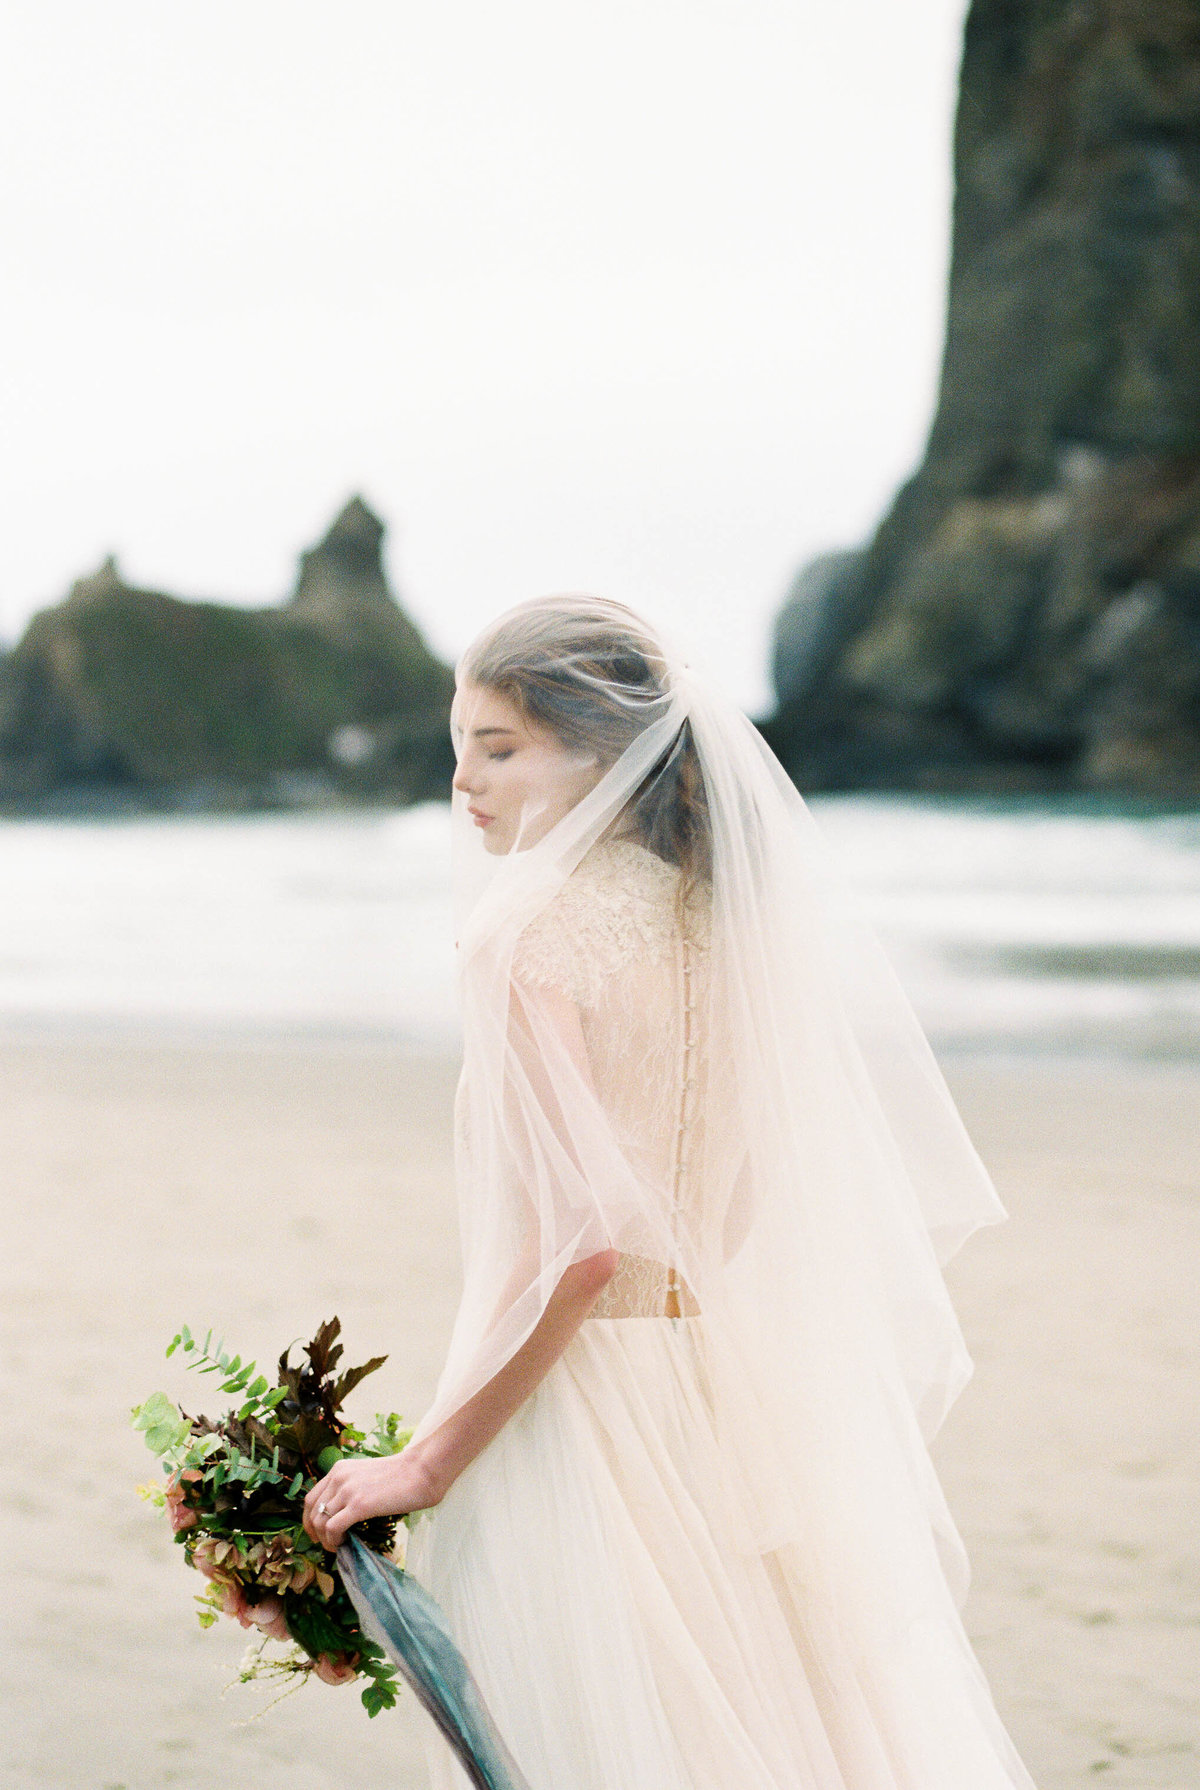 Cannon-Beach-Bridal-Editorial-Georgia-Ruth-Photography-15